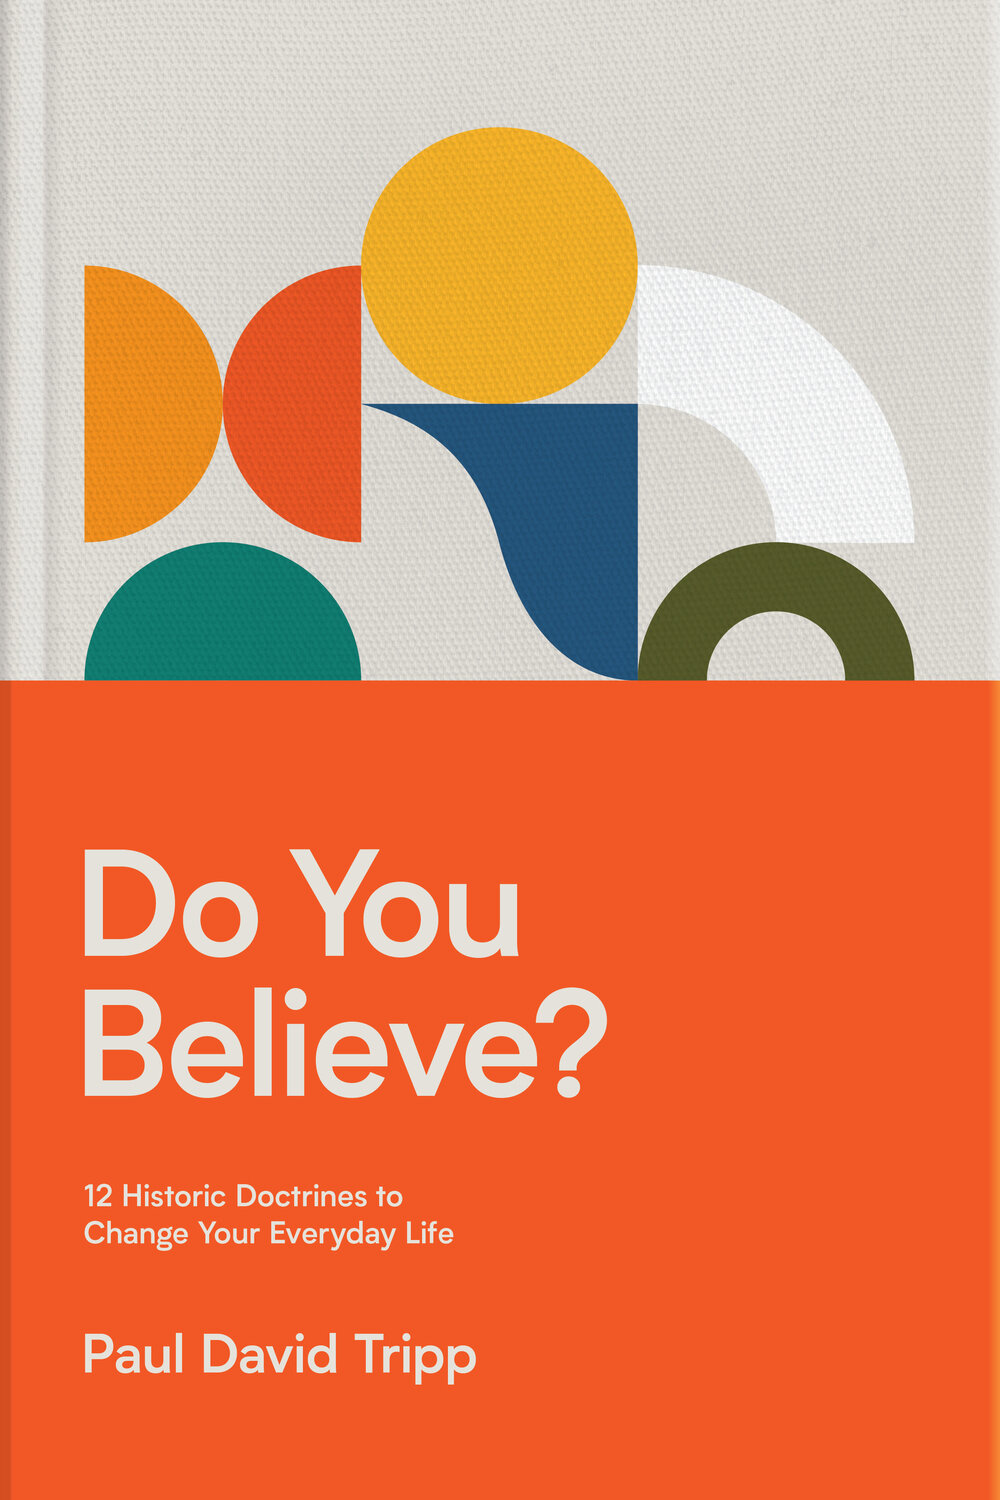 Do You Believe? 12 Historic Doctrines to Change Your Everyday Life